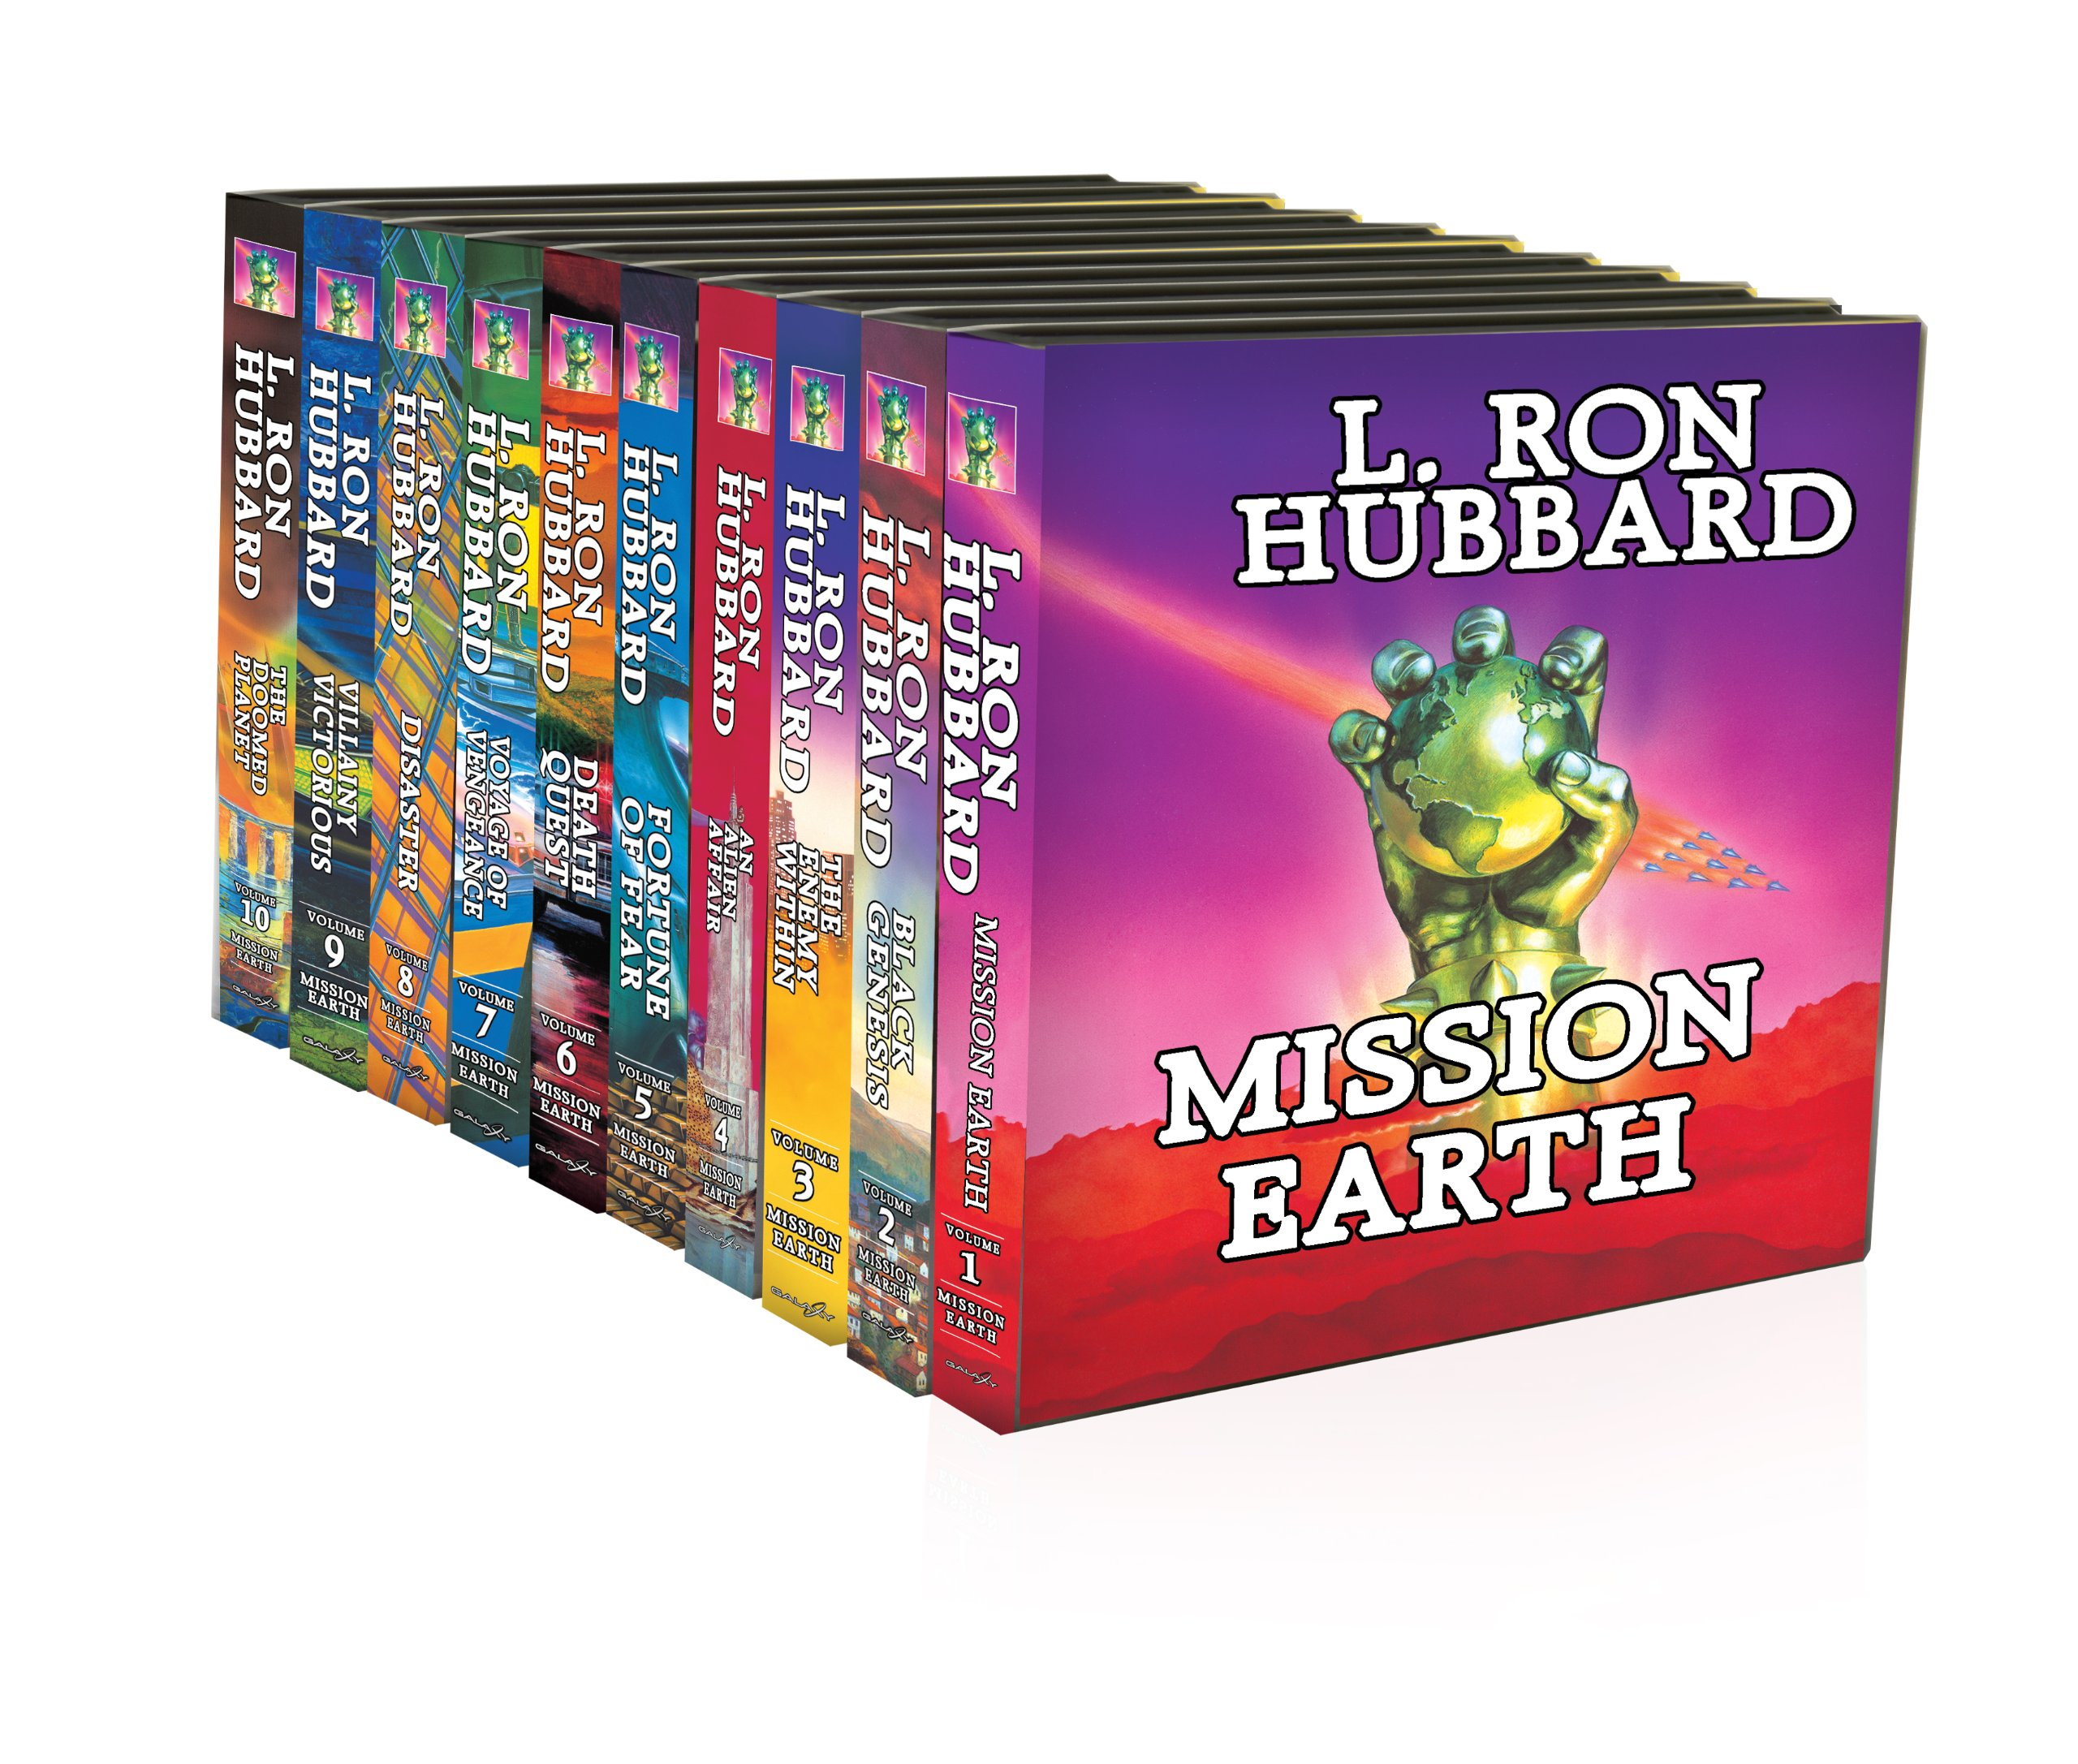 Mission Earth 10-Volume Collection